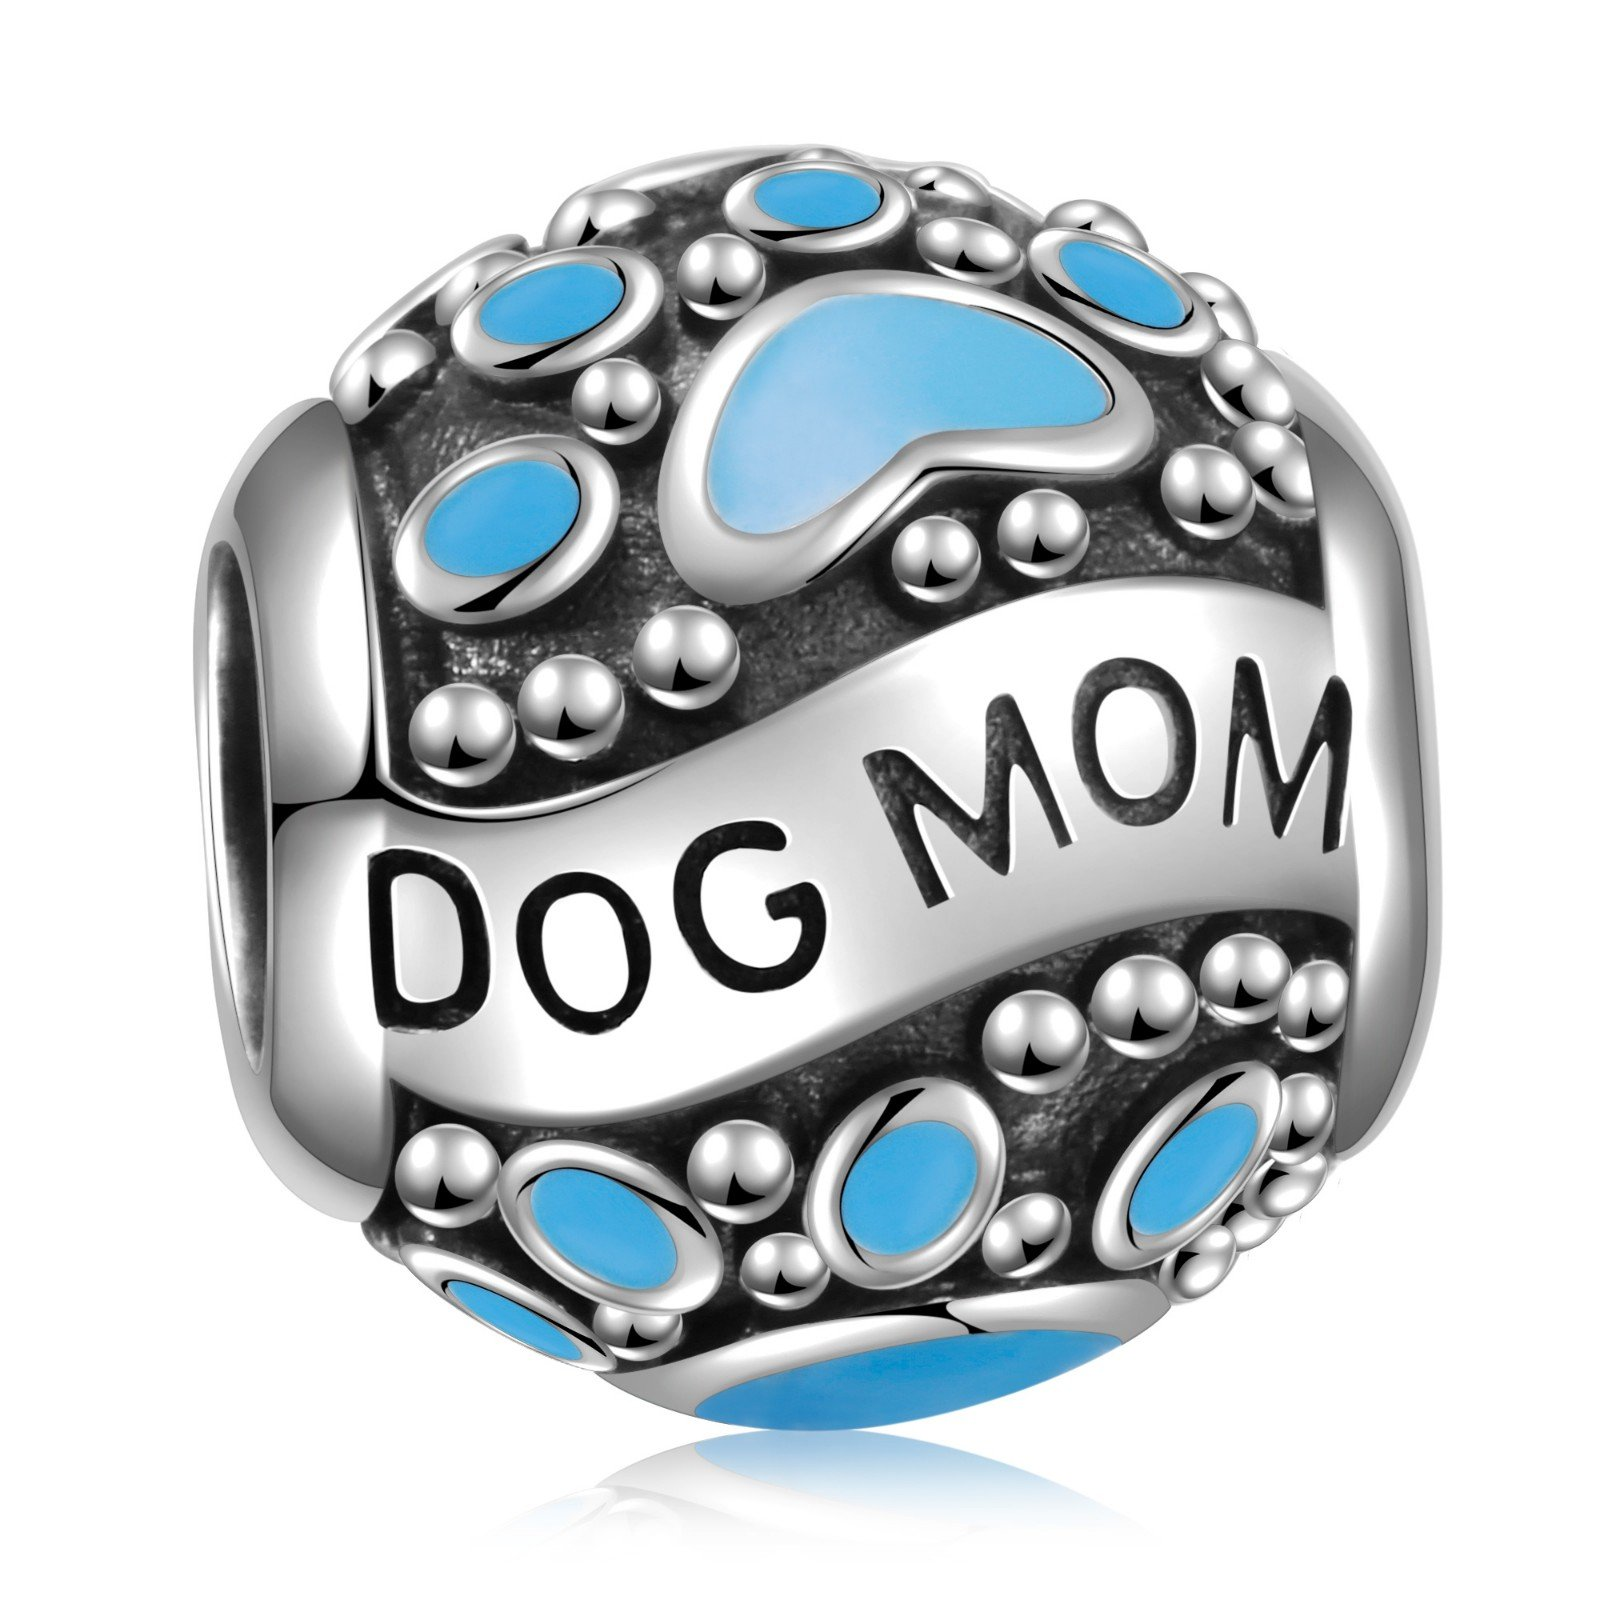 925 Sterling Silver Dog Mom Paw Animal Footprints Vintage Charms Bead for European Charm Bracelet by HQCROW (Image #1)